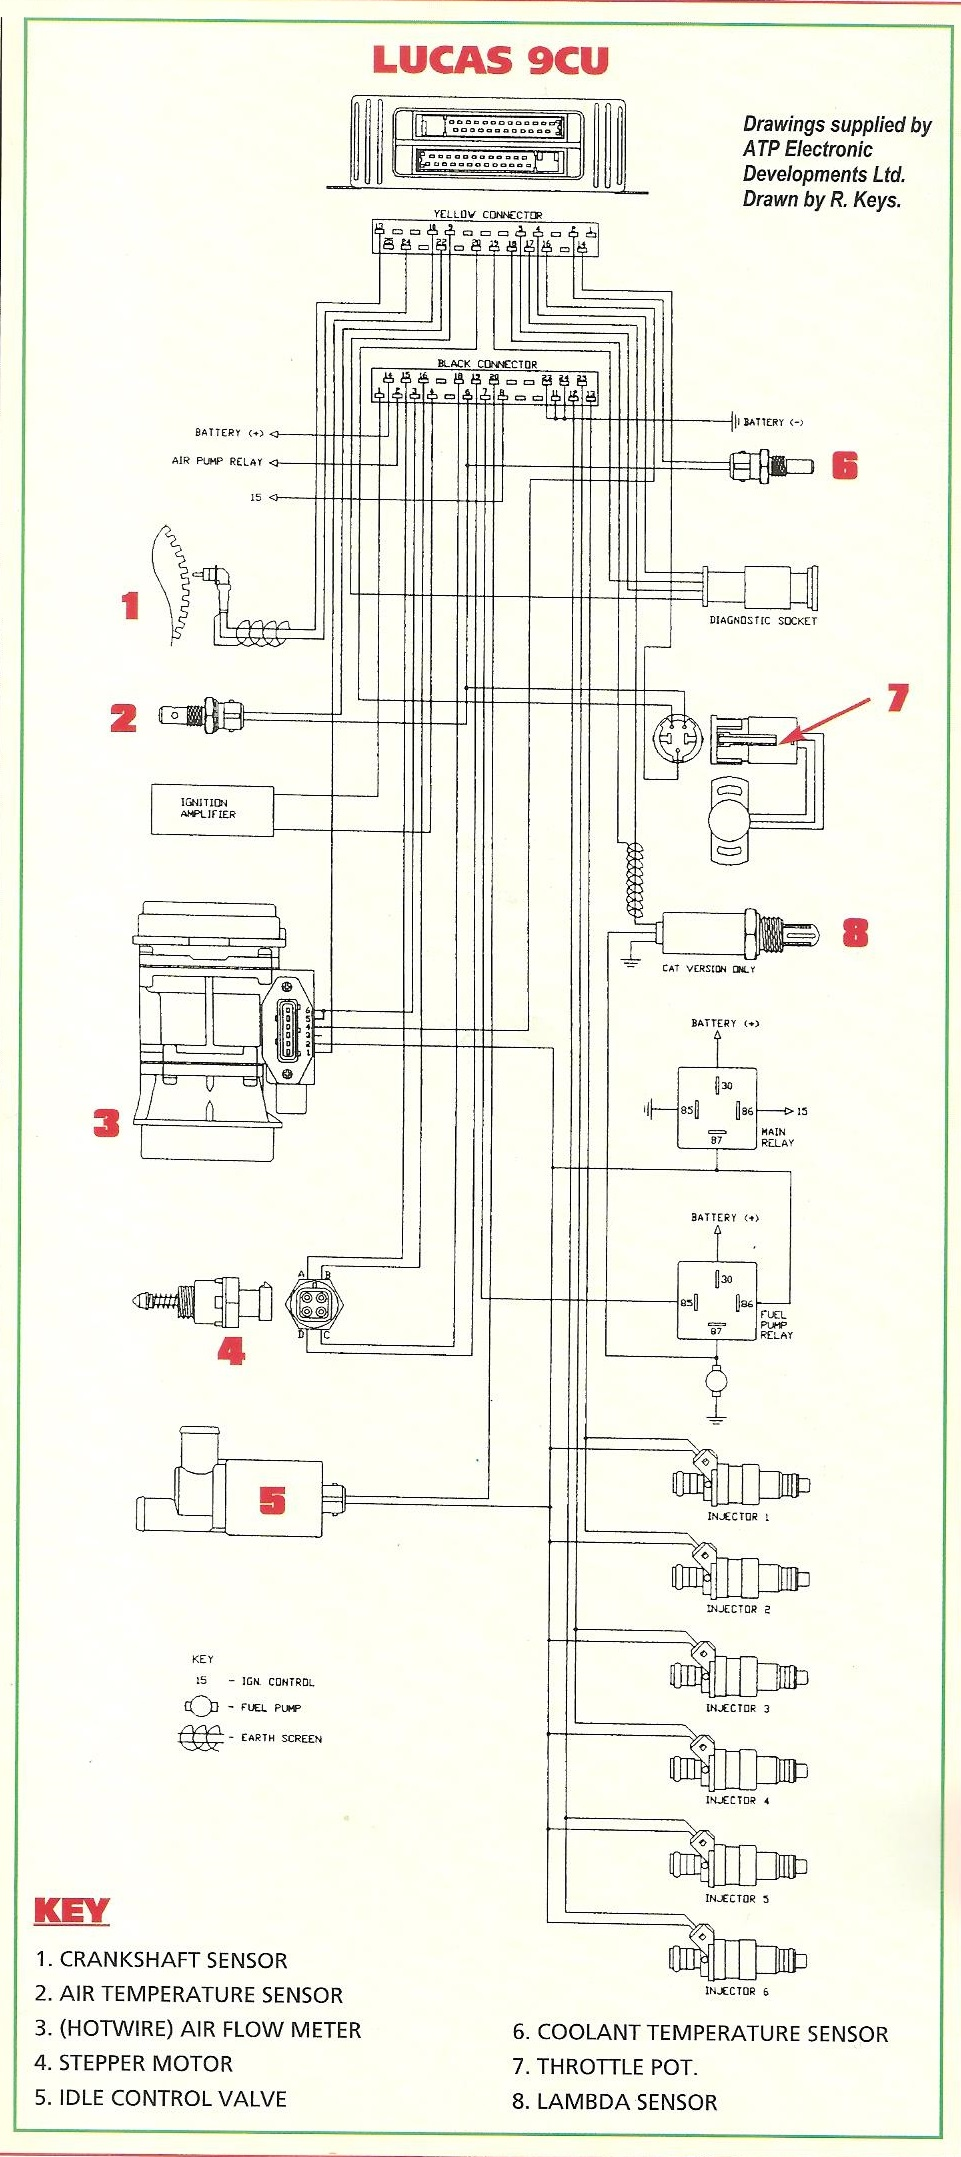 Jaguar Alarm Wiring Diagram | Manual e-books on jaguar parts diagrams, jaguar mark 2, jaguar growler, jaguar rear end, jaguar gt, 2005 mini cooper parts diagrams, jaguar hardtop convertible, jaguar shooting brake, jaguar e class, jaguar racing green, jaguar 2 door, jaguar 2014 models, jaguar fuel pump diagram, jaguar wagon, jaguar exhaust system, jaguar mark x, jaguar xk8 problems, dish network receiver installation diagrams, jaguar electrical diagrams, jaguar r type,